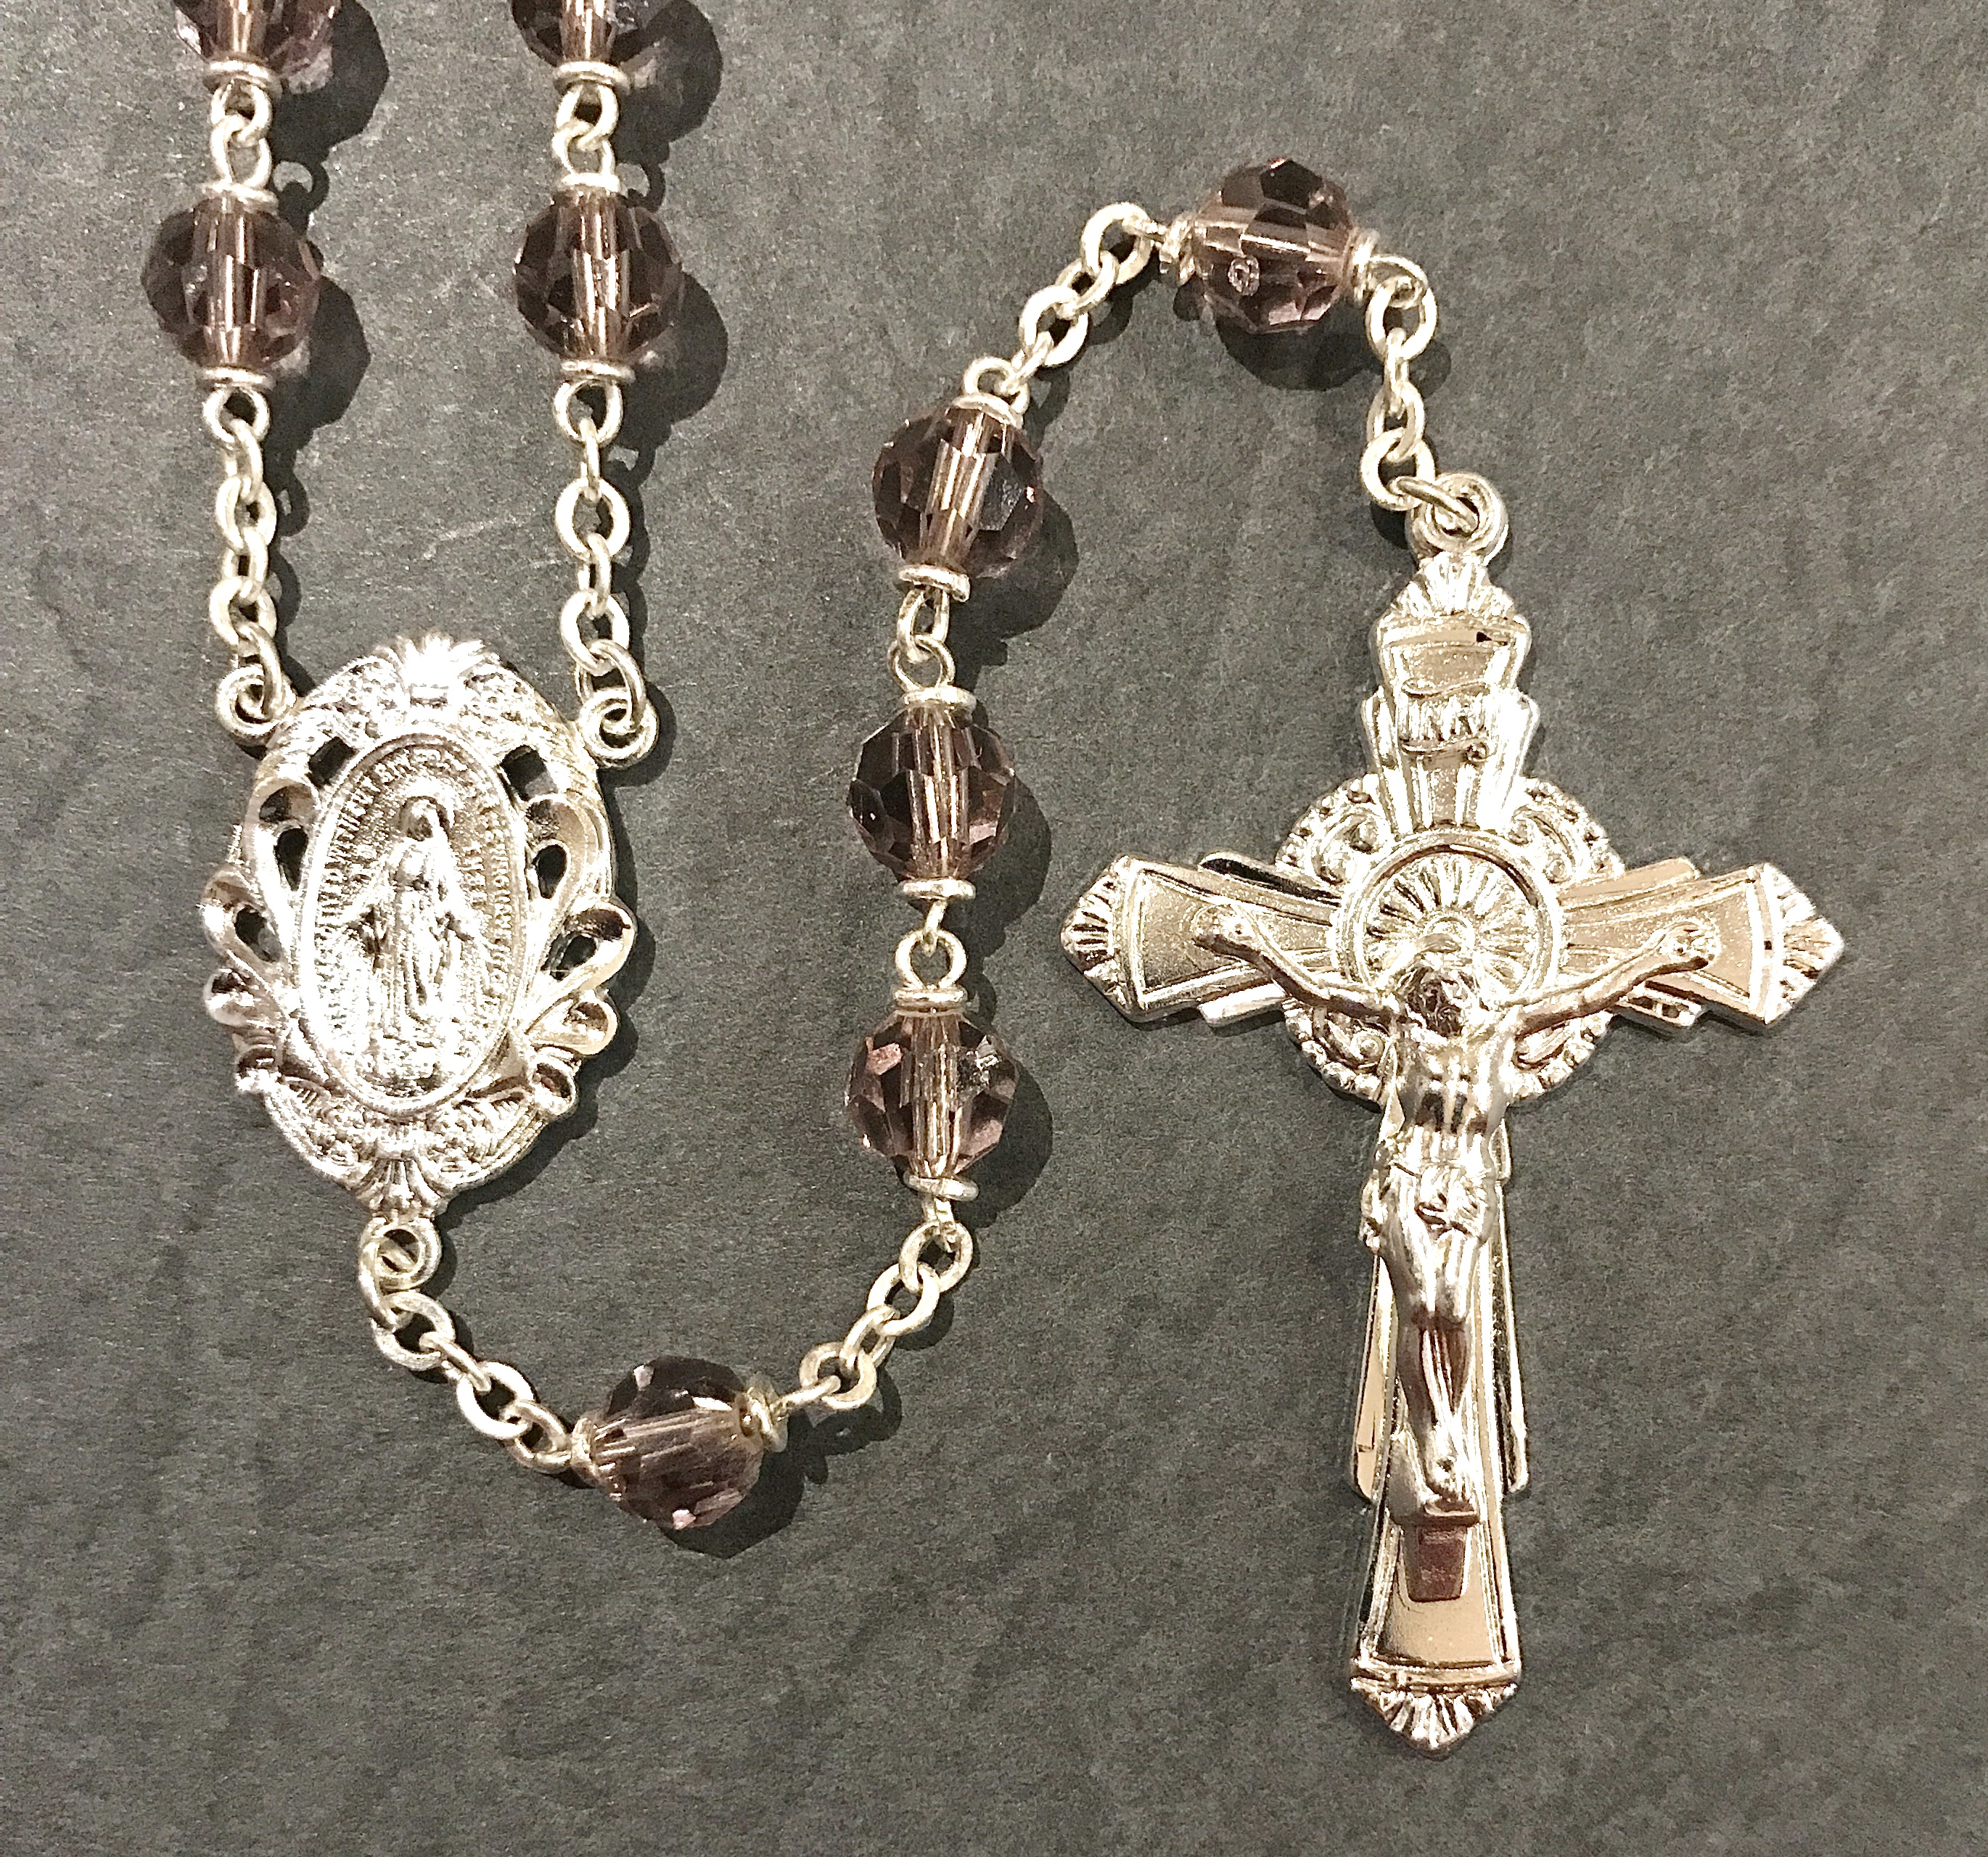 6mm AMETHYST TIN CUT LOC-LINK ROSARY WITH STERLING SILVER PLATED CRUCIFIX, CENTER, WIRE, CHAIN GIFT BOXED